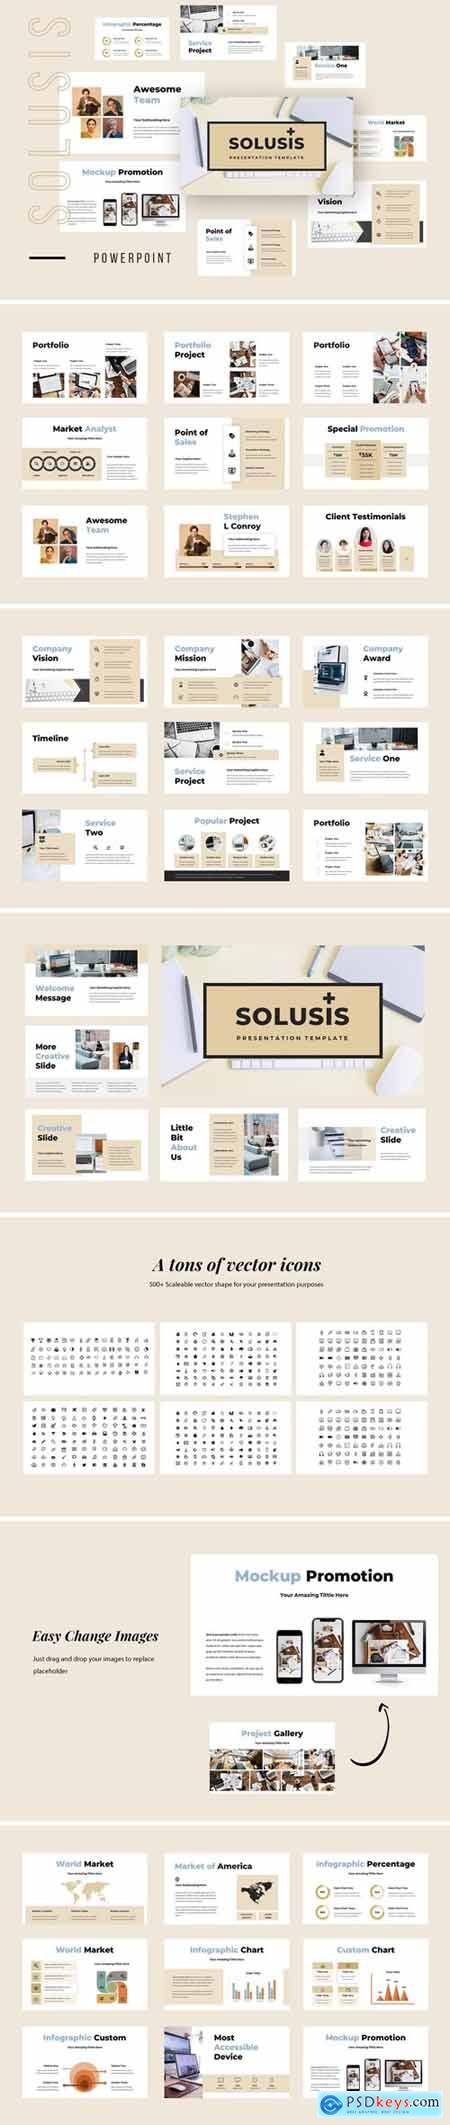 Solusis - Business Powerpoint, Keynote and Google Slides Templates